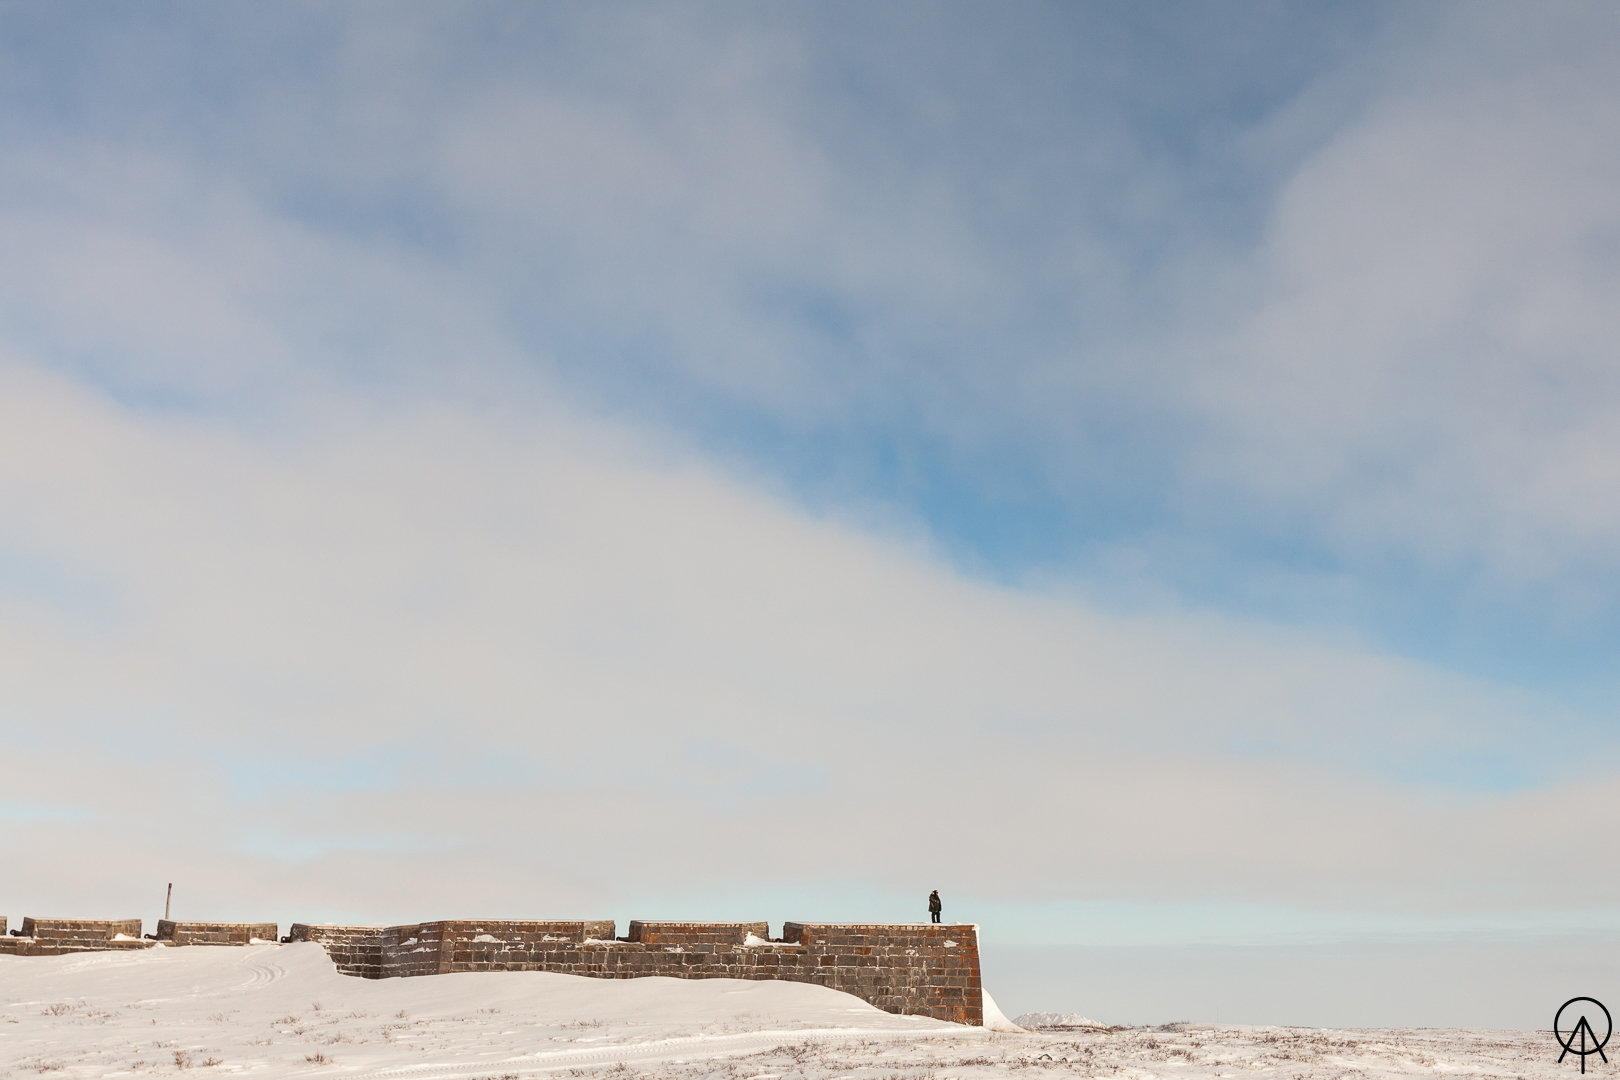 The isolation of Canada's North at Prince of Wales Fort